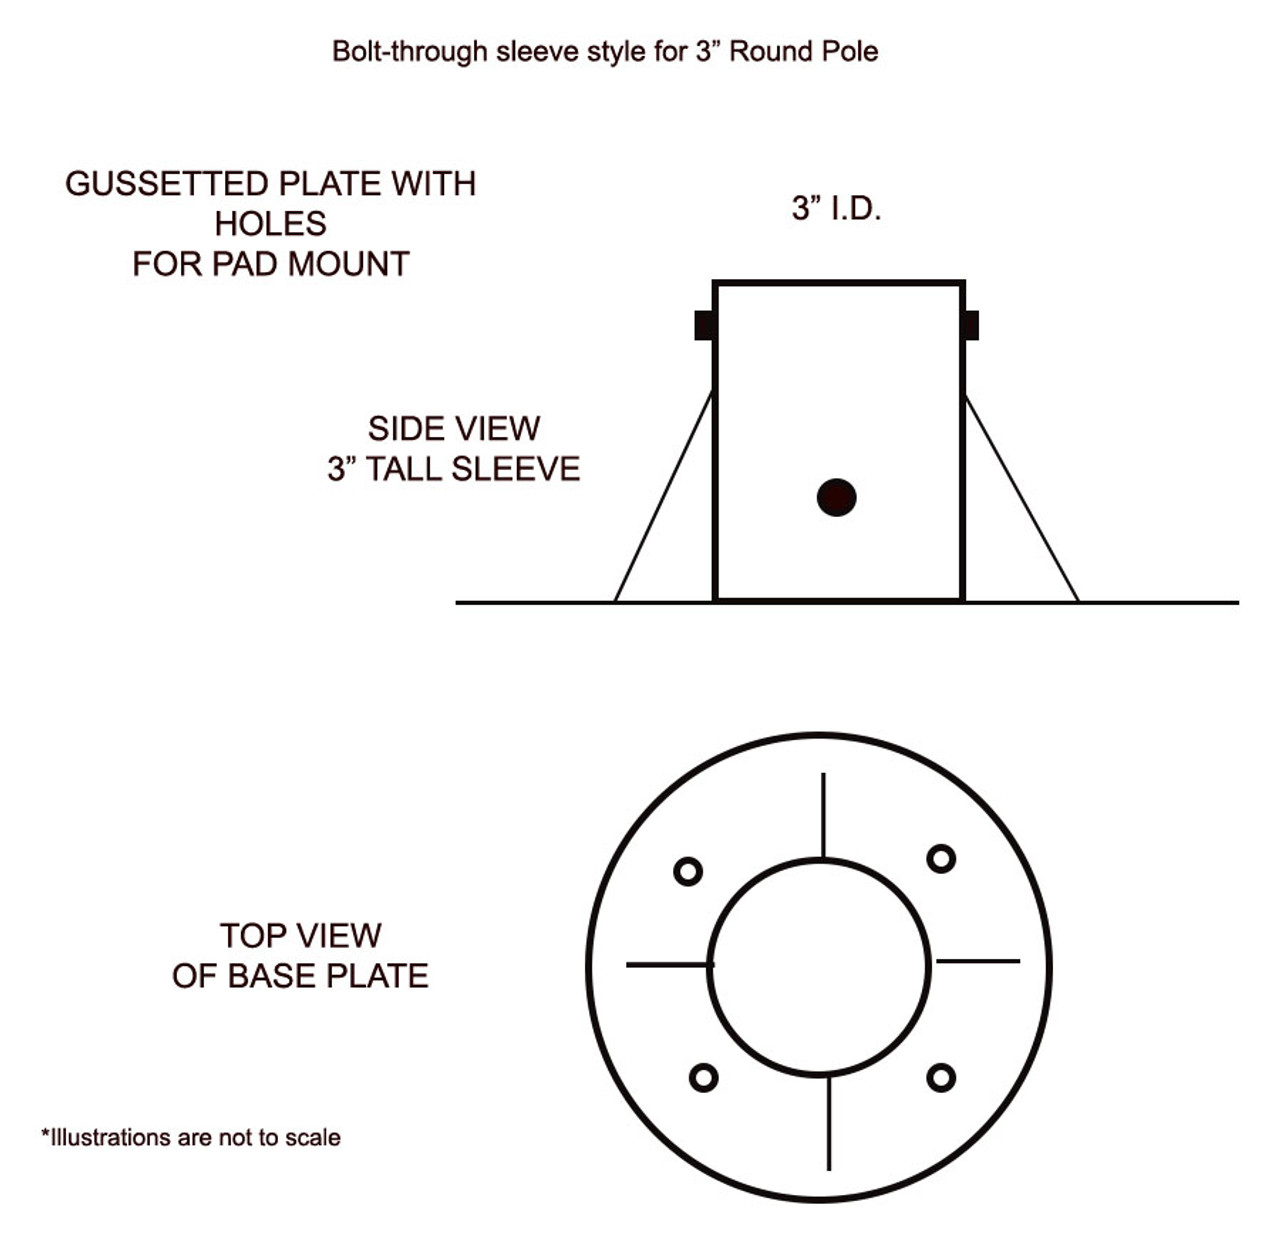 """SLEEVE style-Base plate is welded to bottom of pole, see standard bolt pattern for 3"""" pole."""